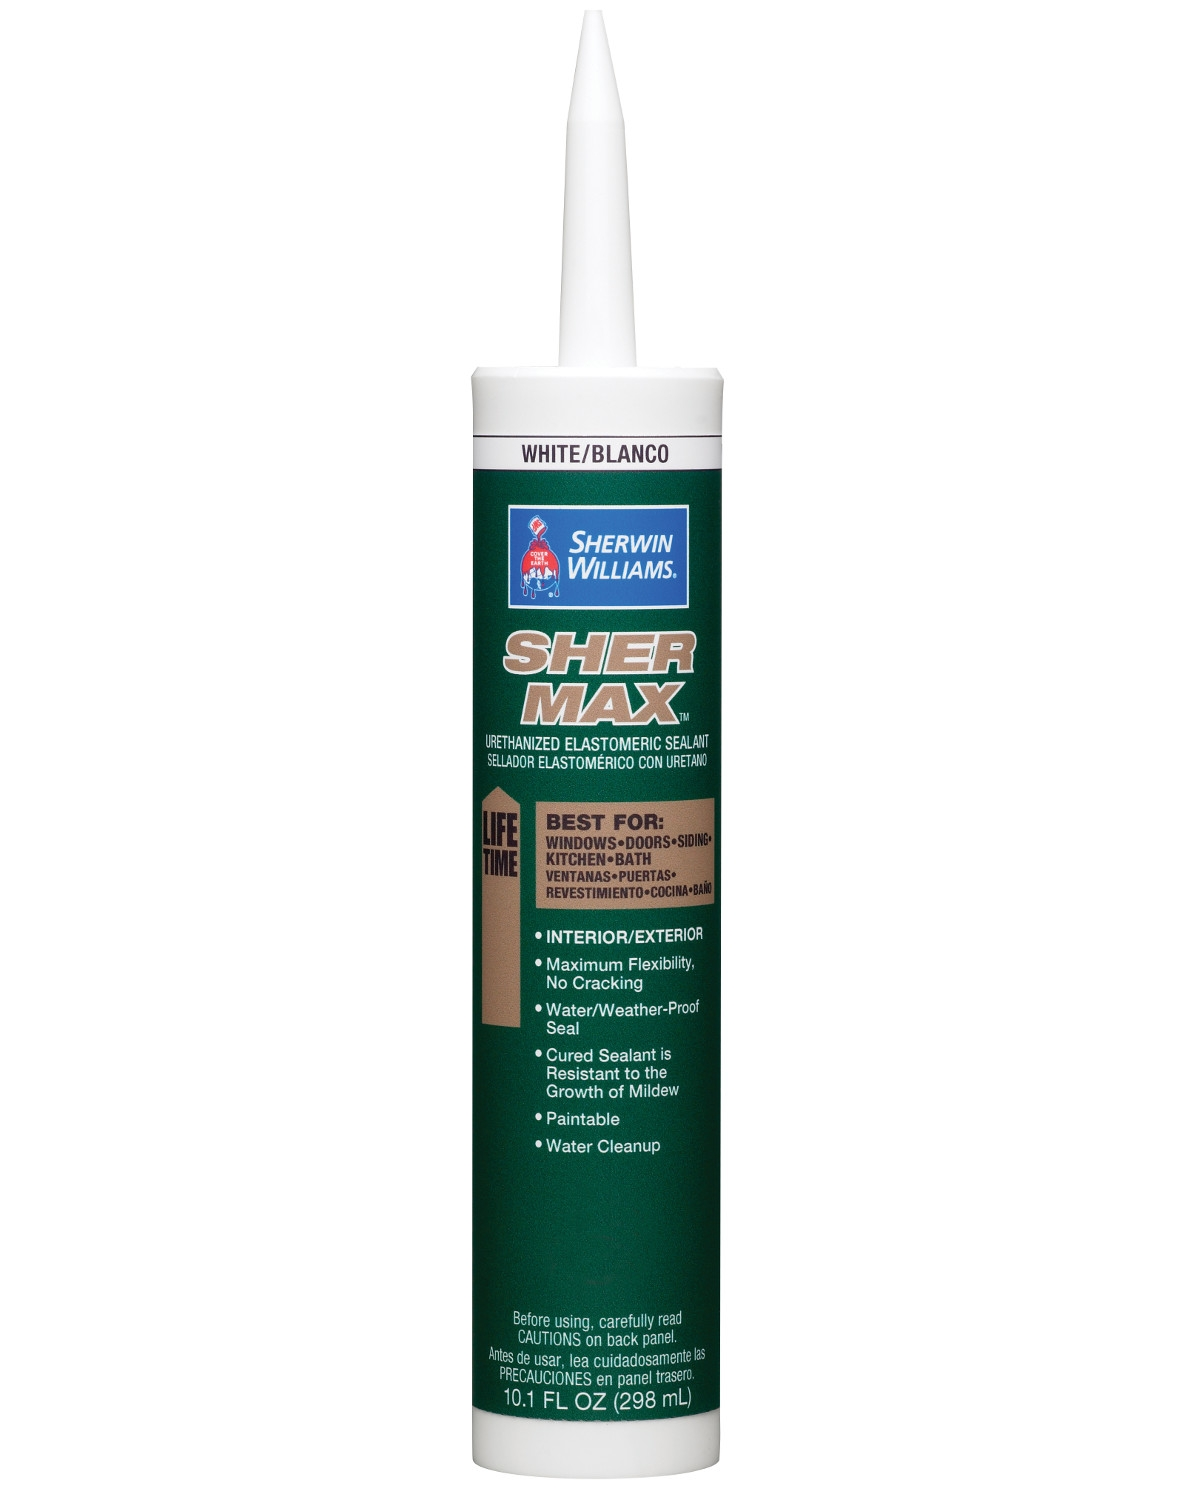 SherMax™ Urethanized Elastomeric Sealant